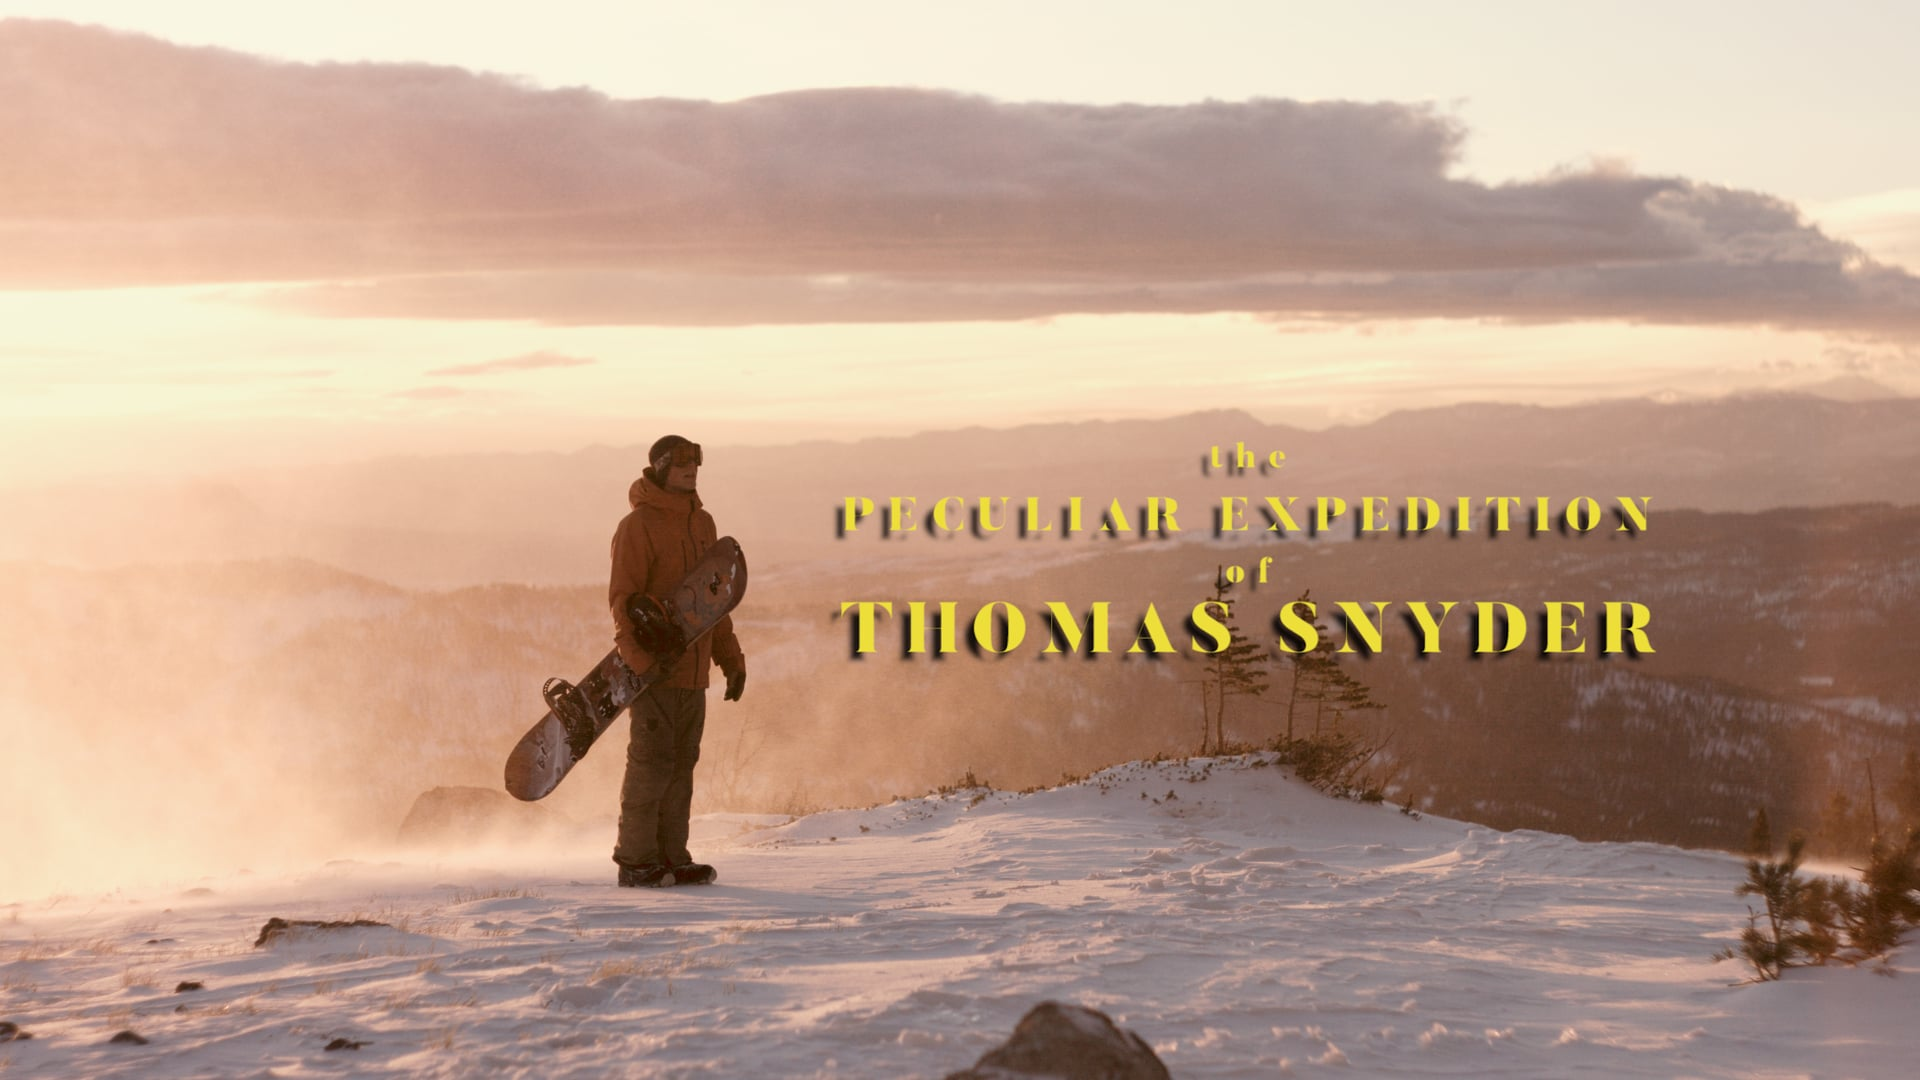 The Peculiar Expedition of Thomas Snyder